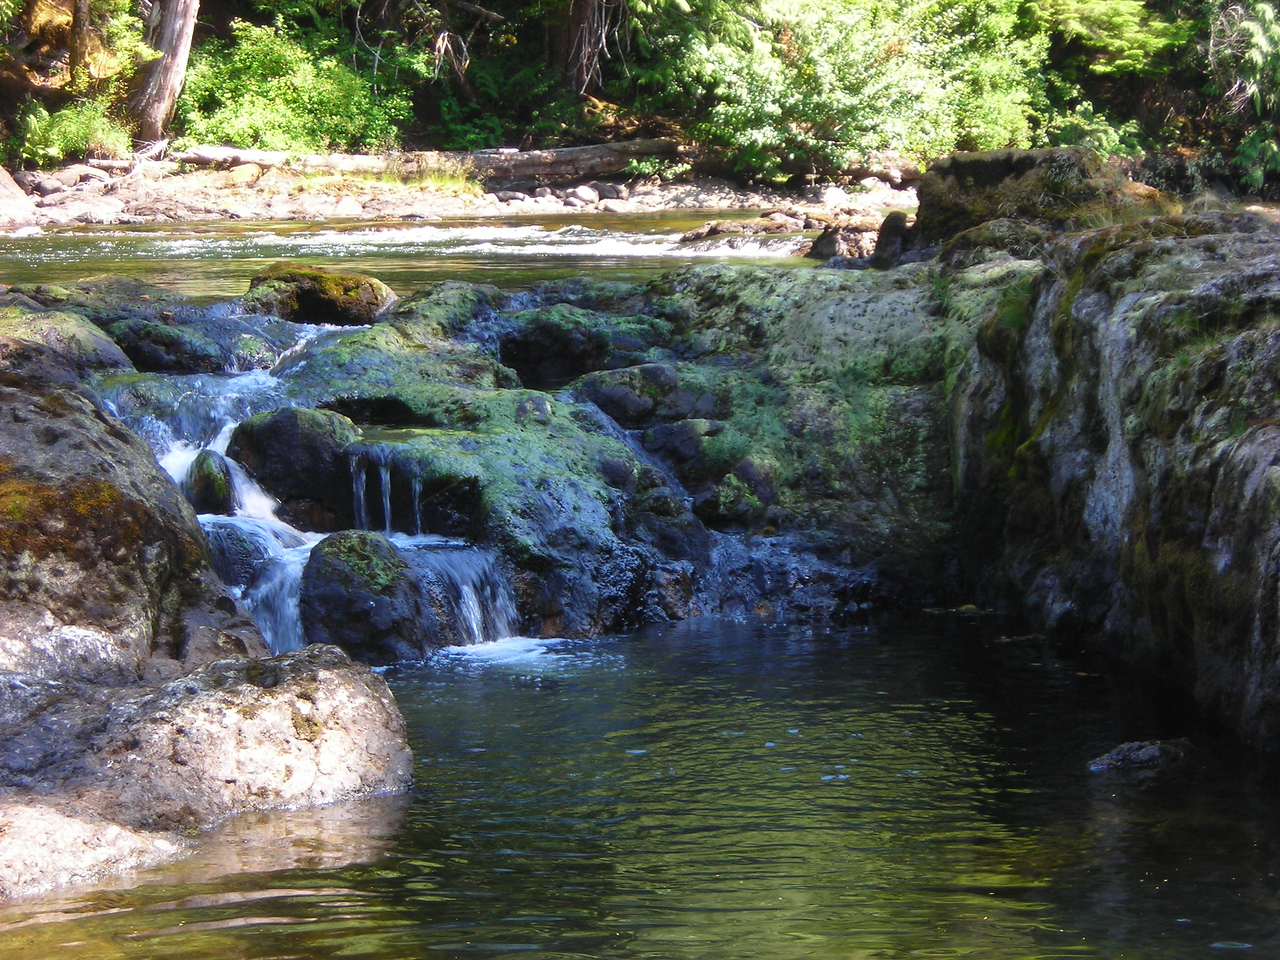 The Marble River begins a series of cascades in the picnic area off of Hwy 30